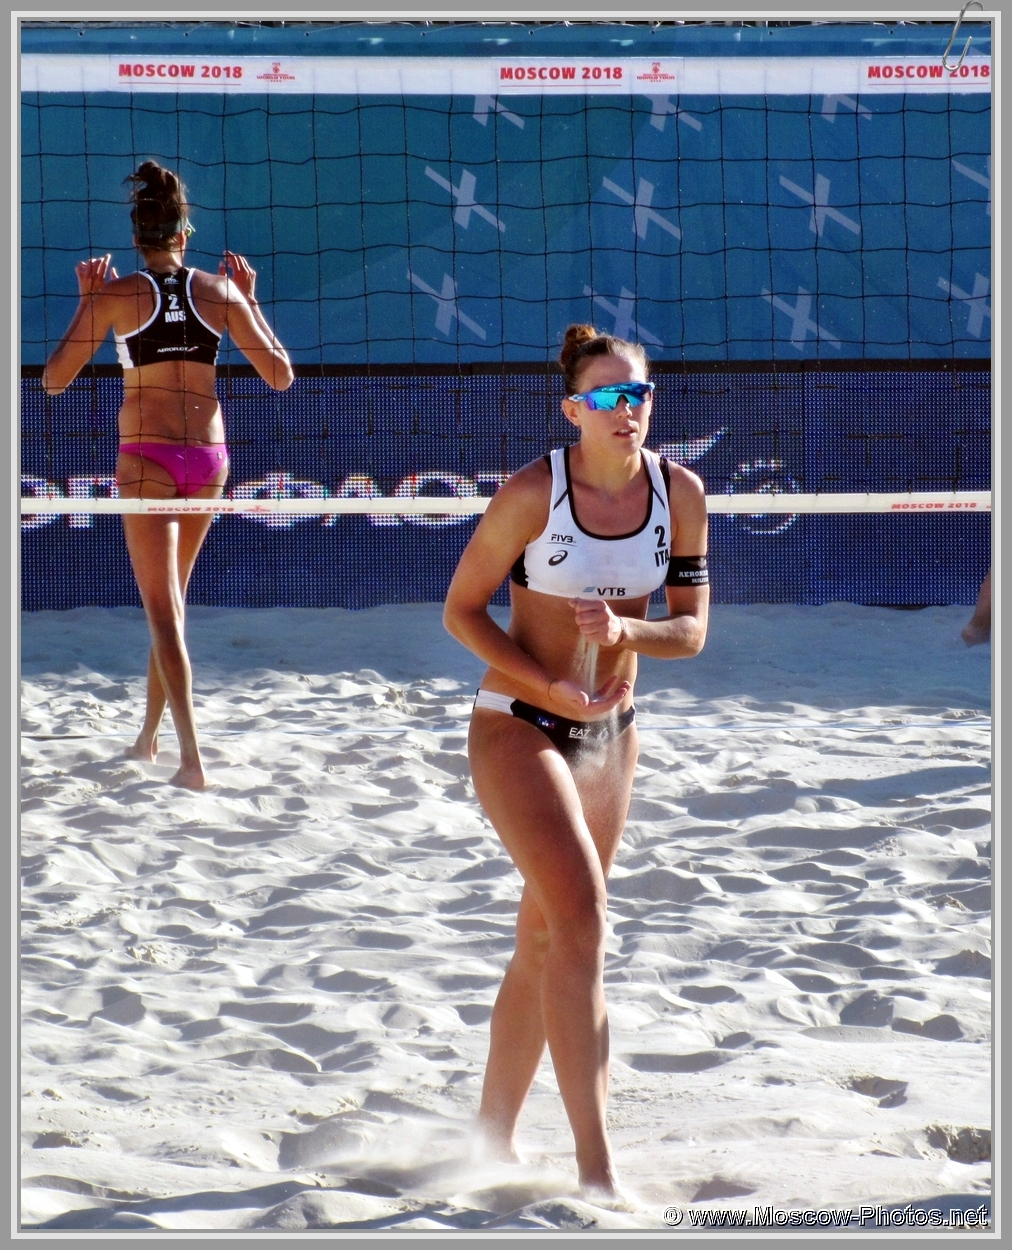 Viktoria Orsi Toth at FIVB Beach Volleyball World Tour in Moscow 2018